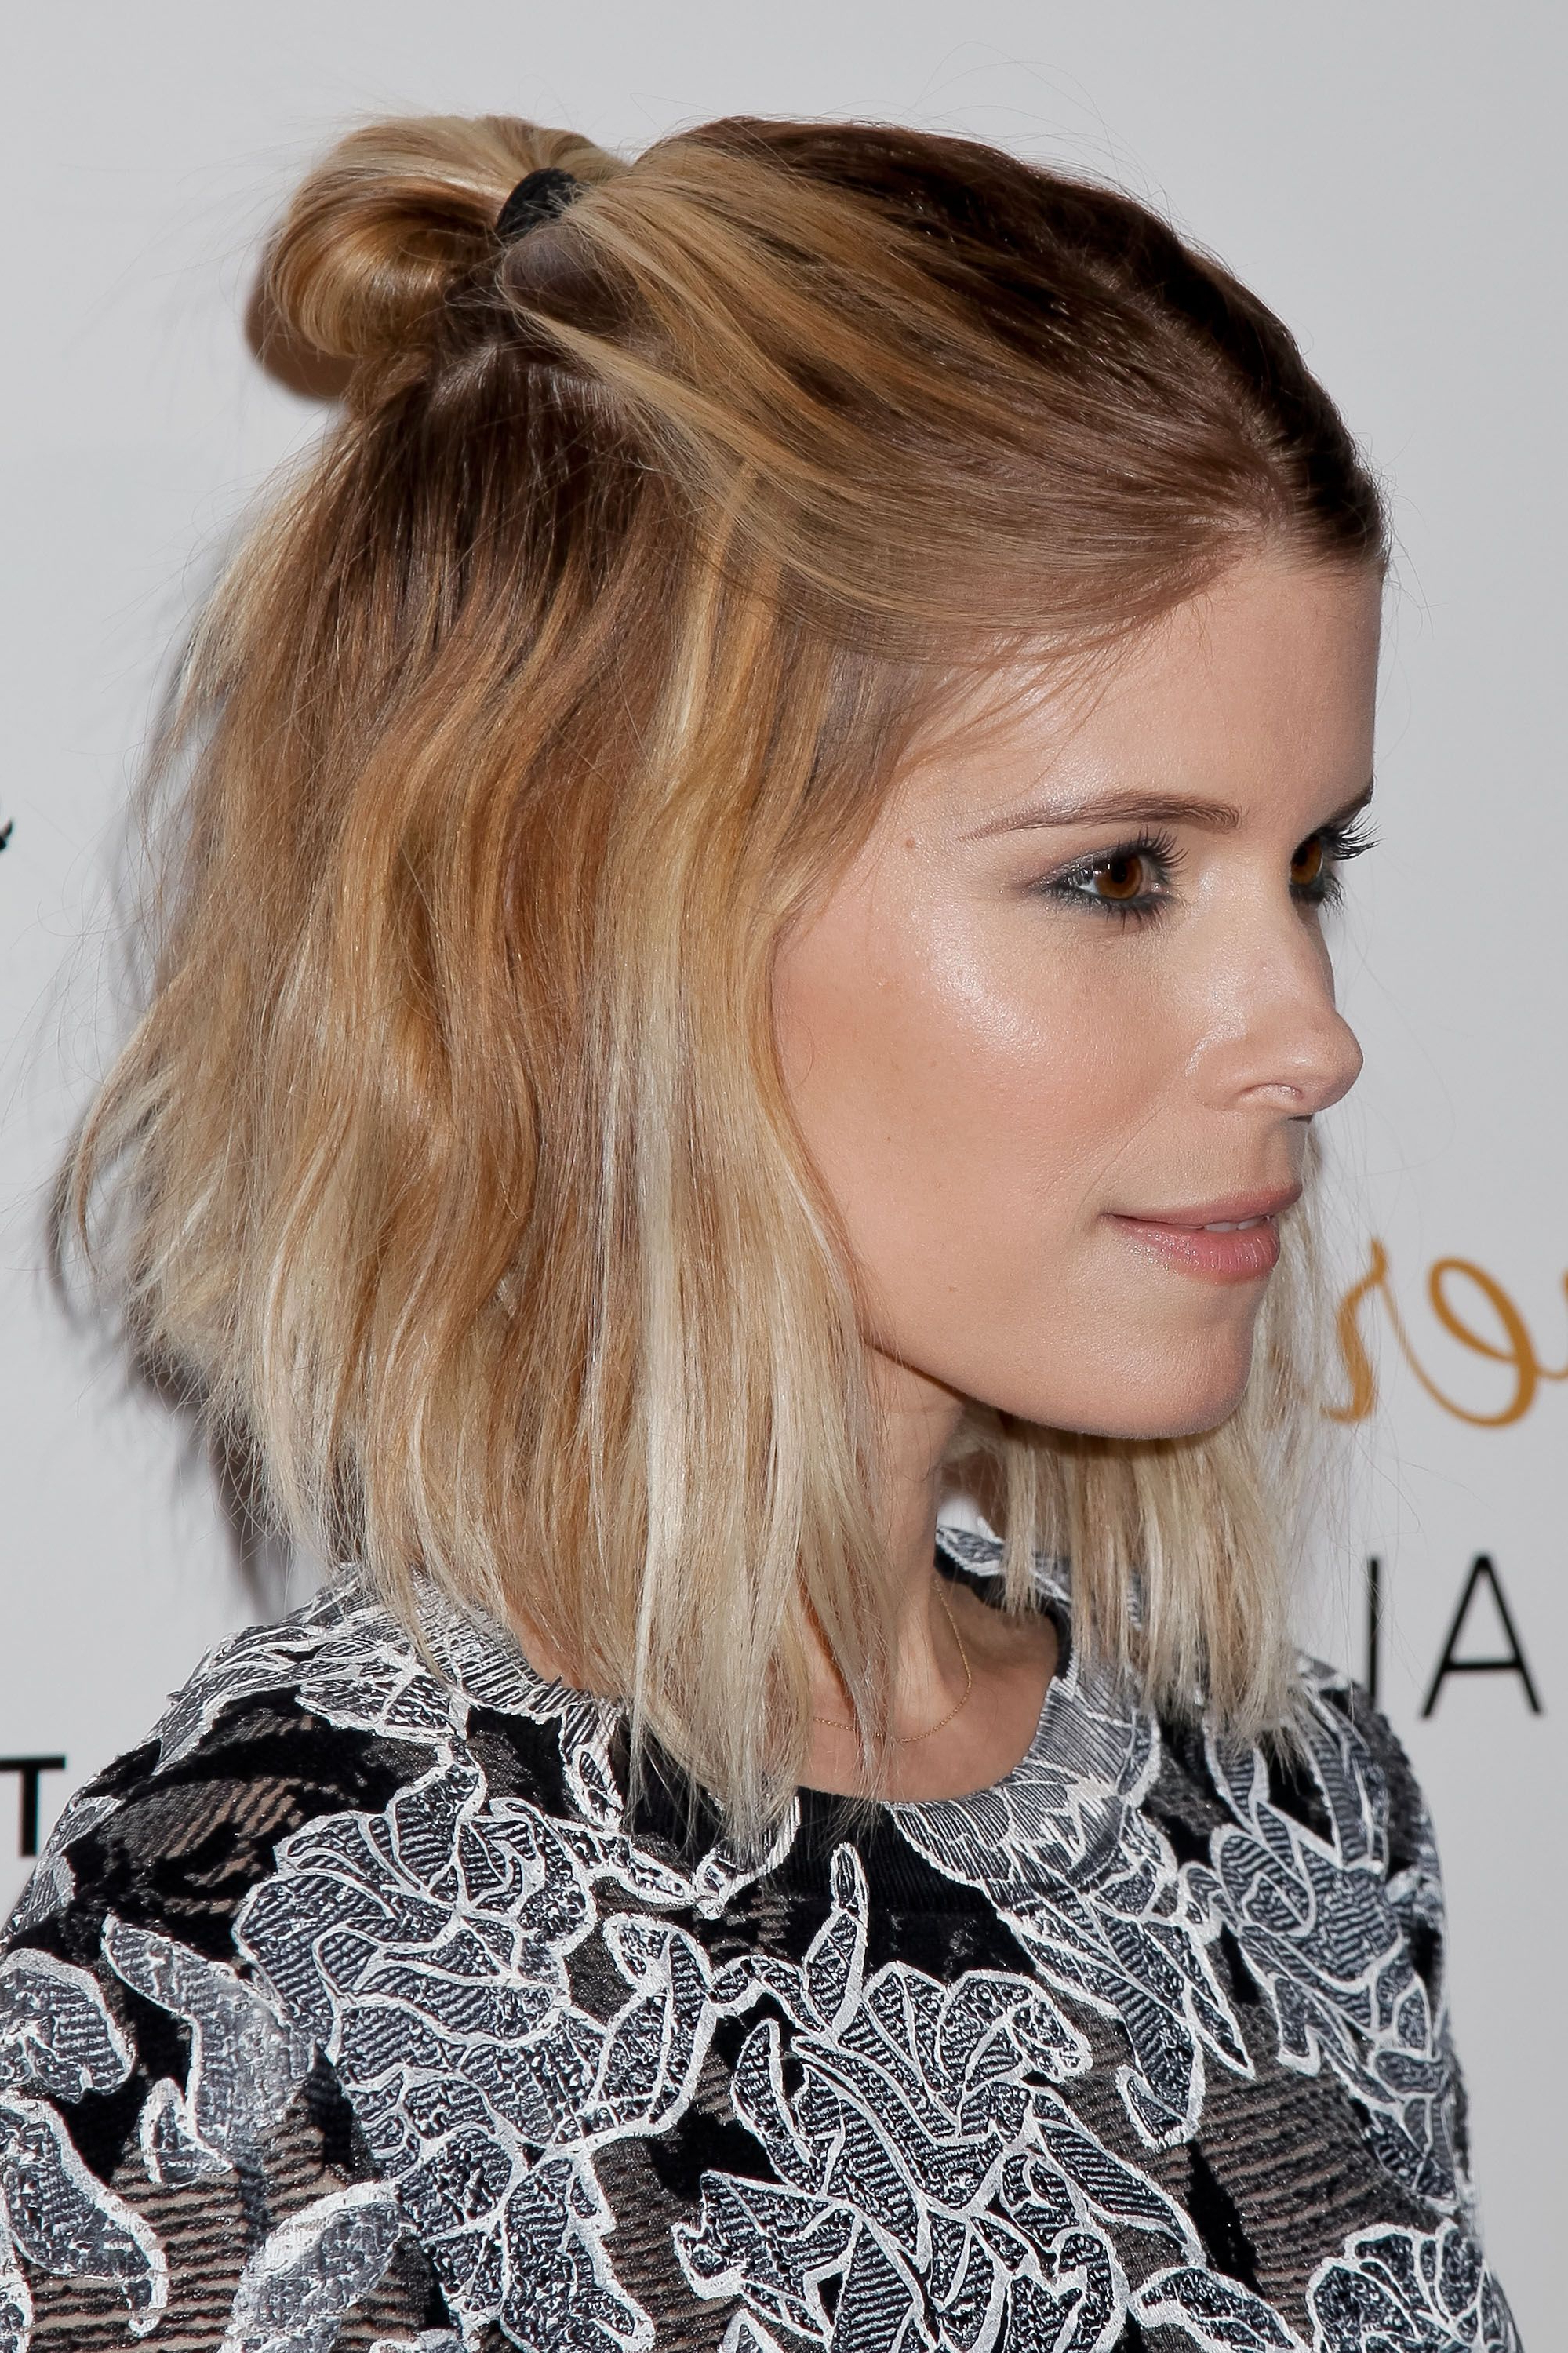 38 Best Hairstyles For Thin Hair – Haircuts For Women With Fine Or With Regard To Half Long Half Short Hairstyles (View 20 of 25)